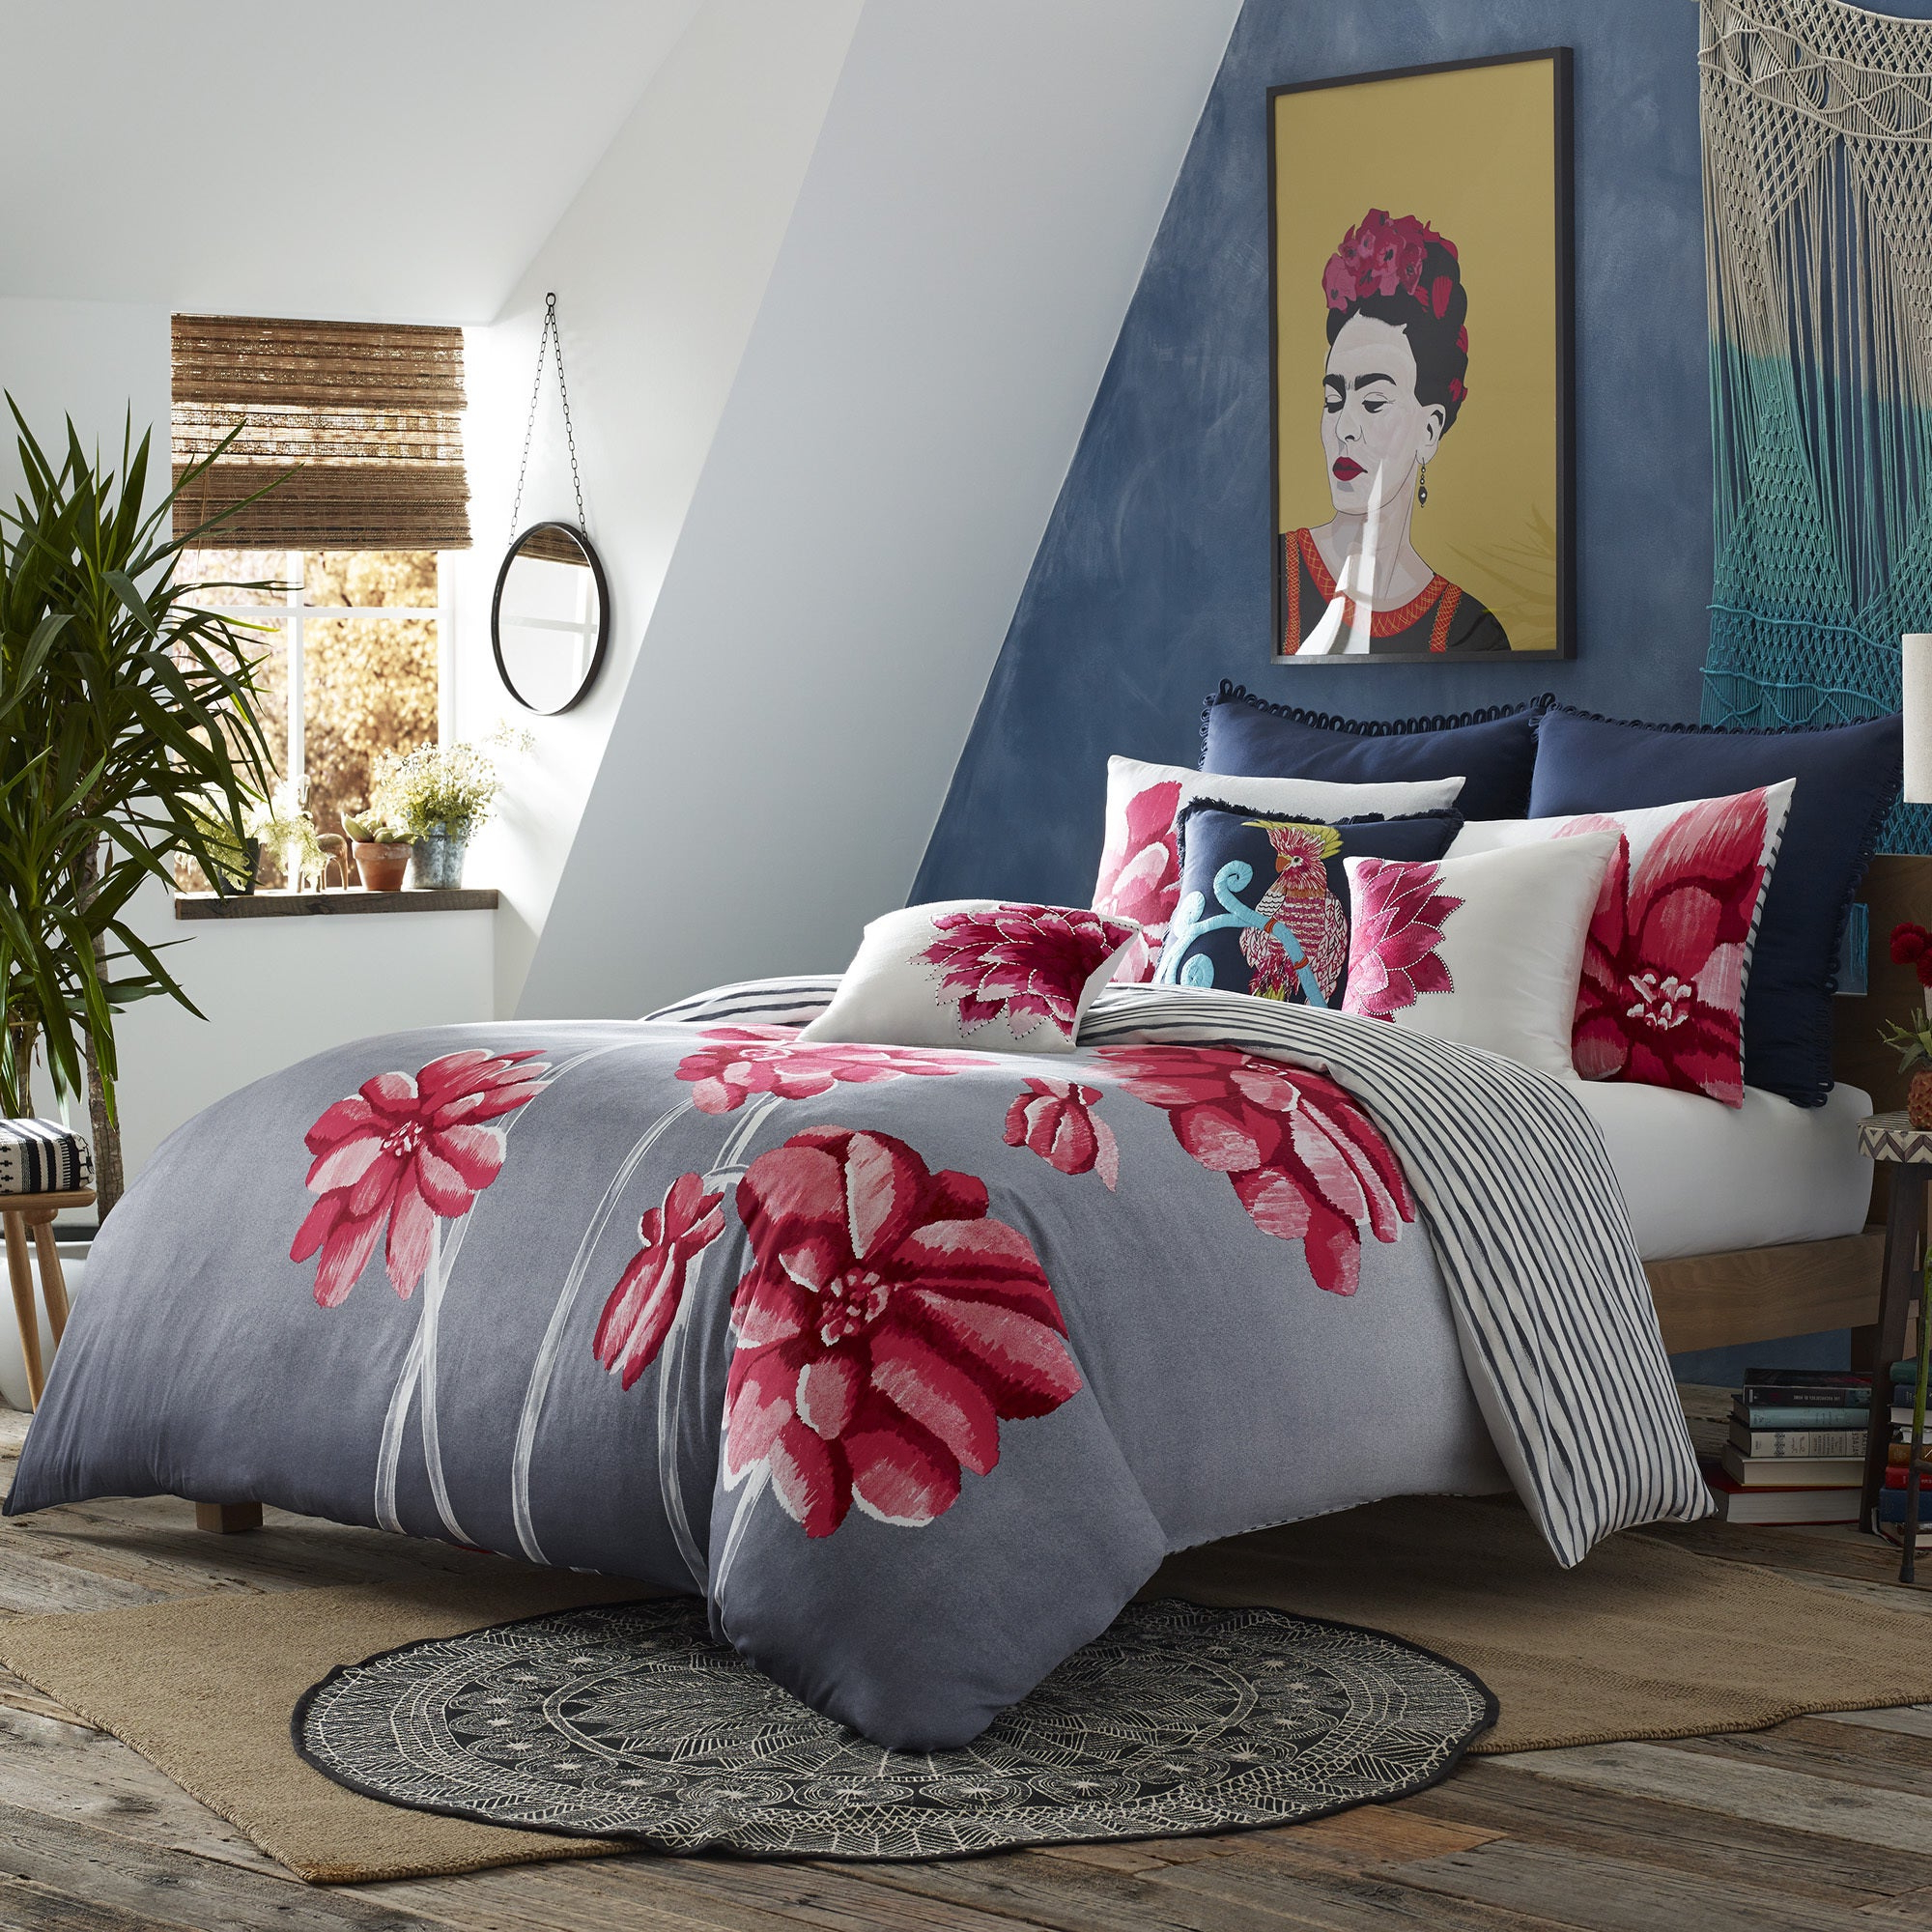 Blissliving Home Frida 3 Piece Duvet Cover Set Regarding Well Known Frida 3 Piece Dining Table Sets (Gallery 11 of 20)